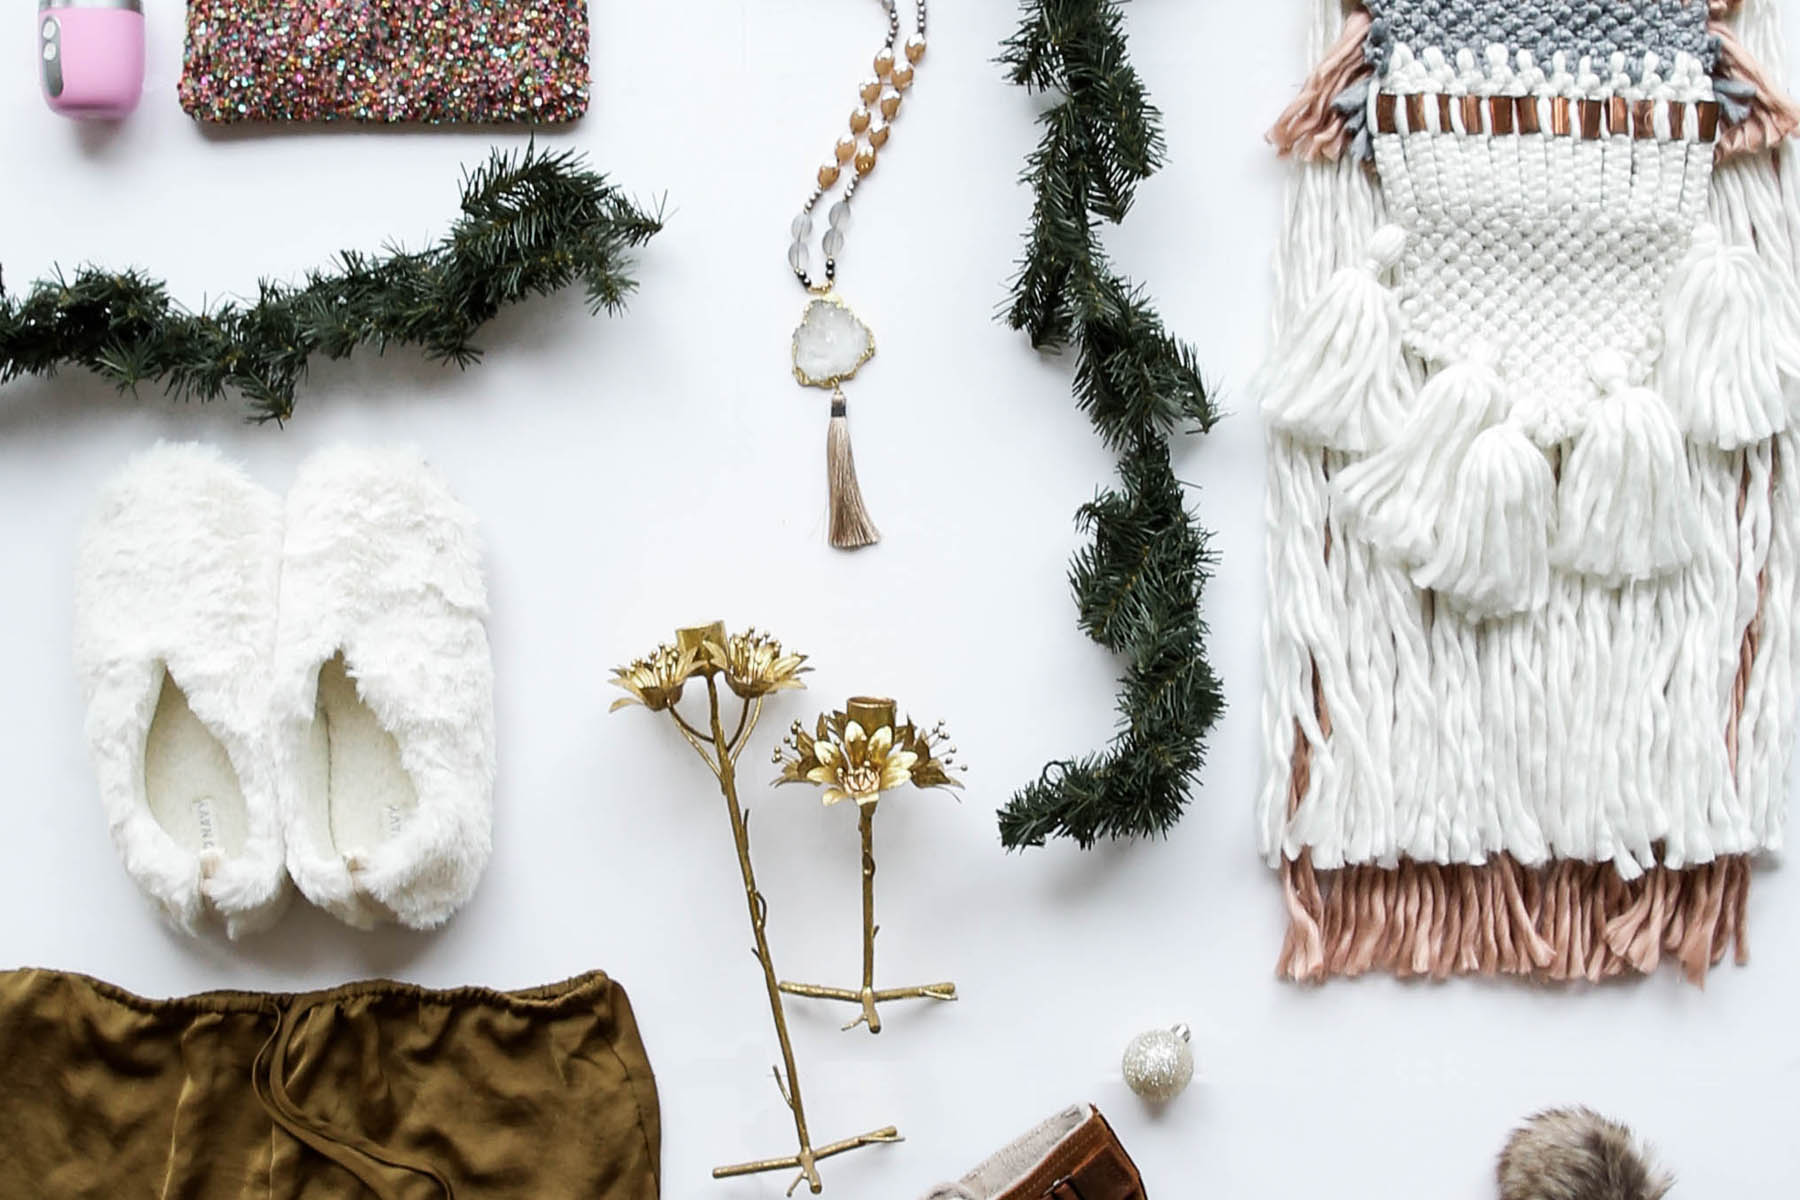 Gifts for Her: A Shoppable Gift Guide